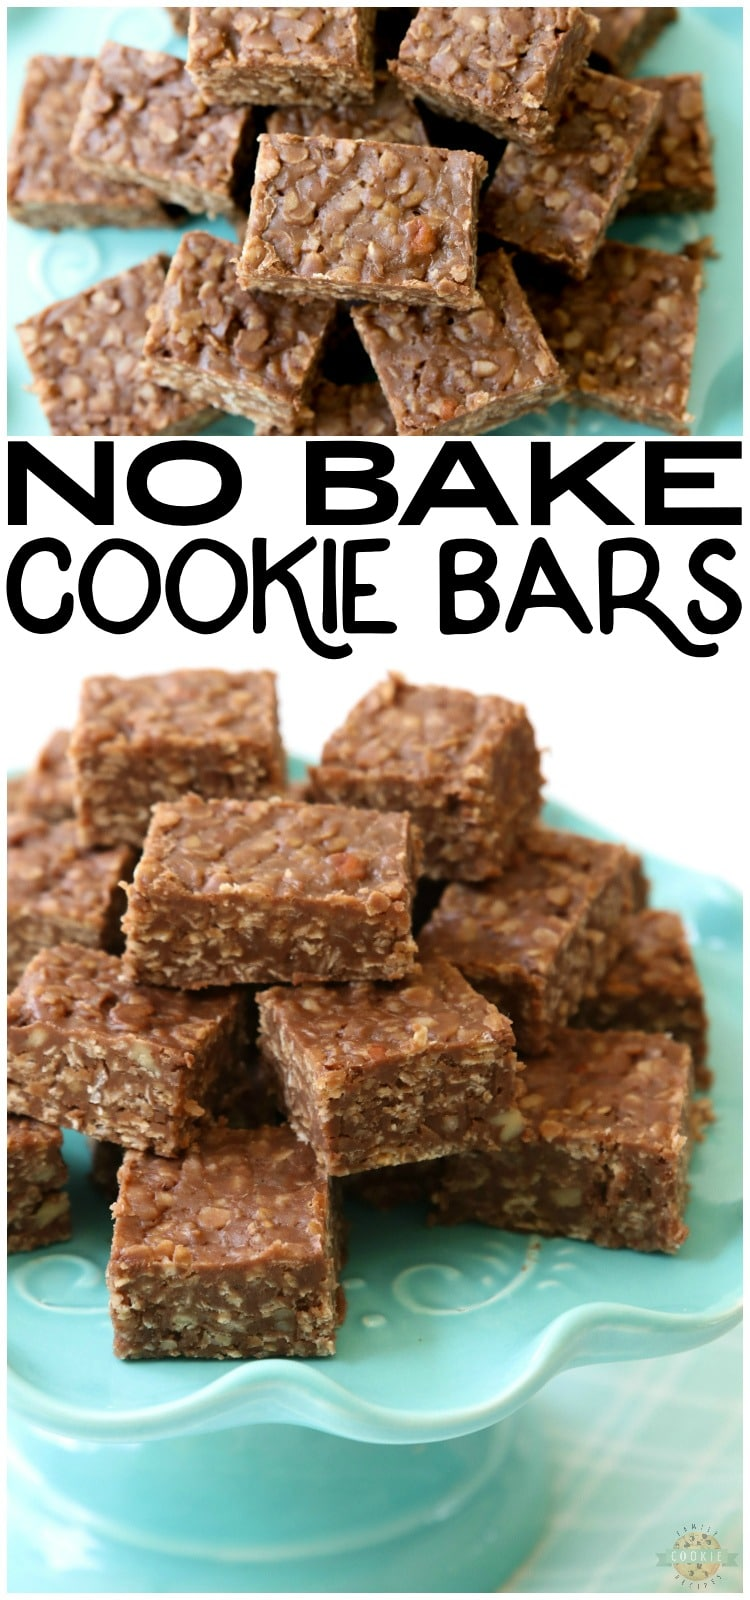 No Bake Cookie Bars recipe is a quick variation on THE BEST no bake cookies recipe. Made with quick oats & chocolate chips, these no bake oatmeal cookies couldn't be tastier! via @familycookierecipes